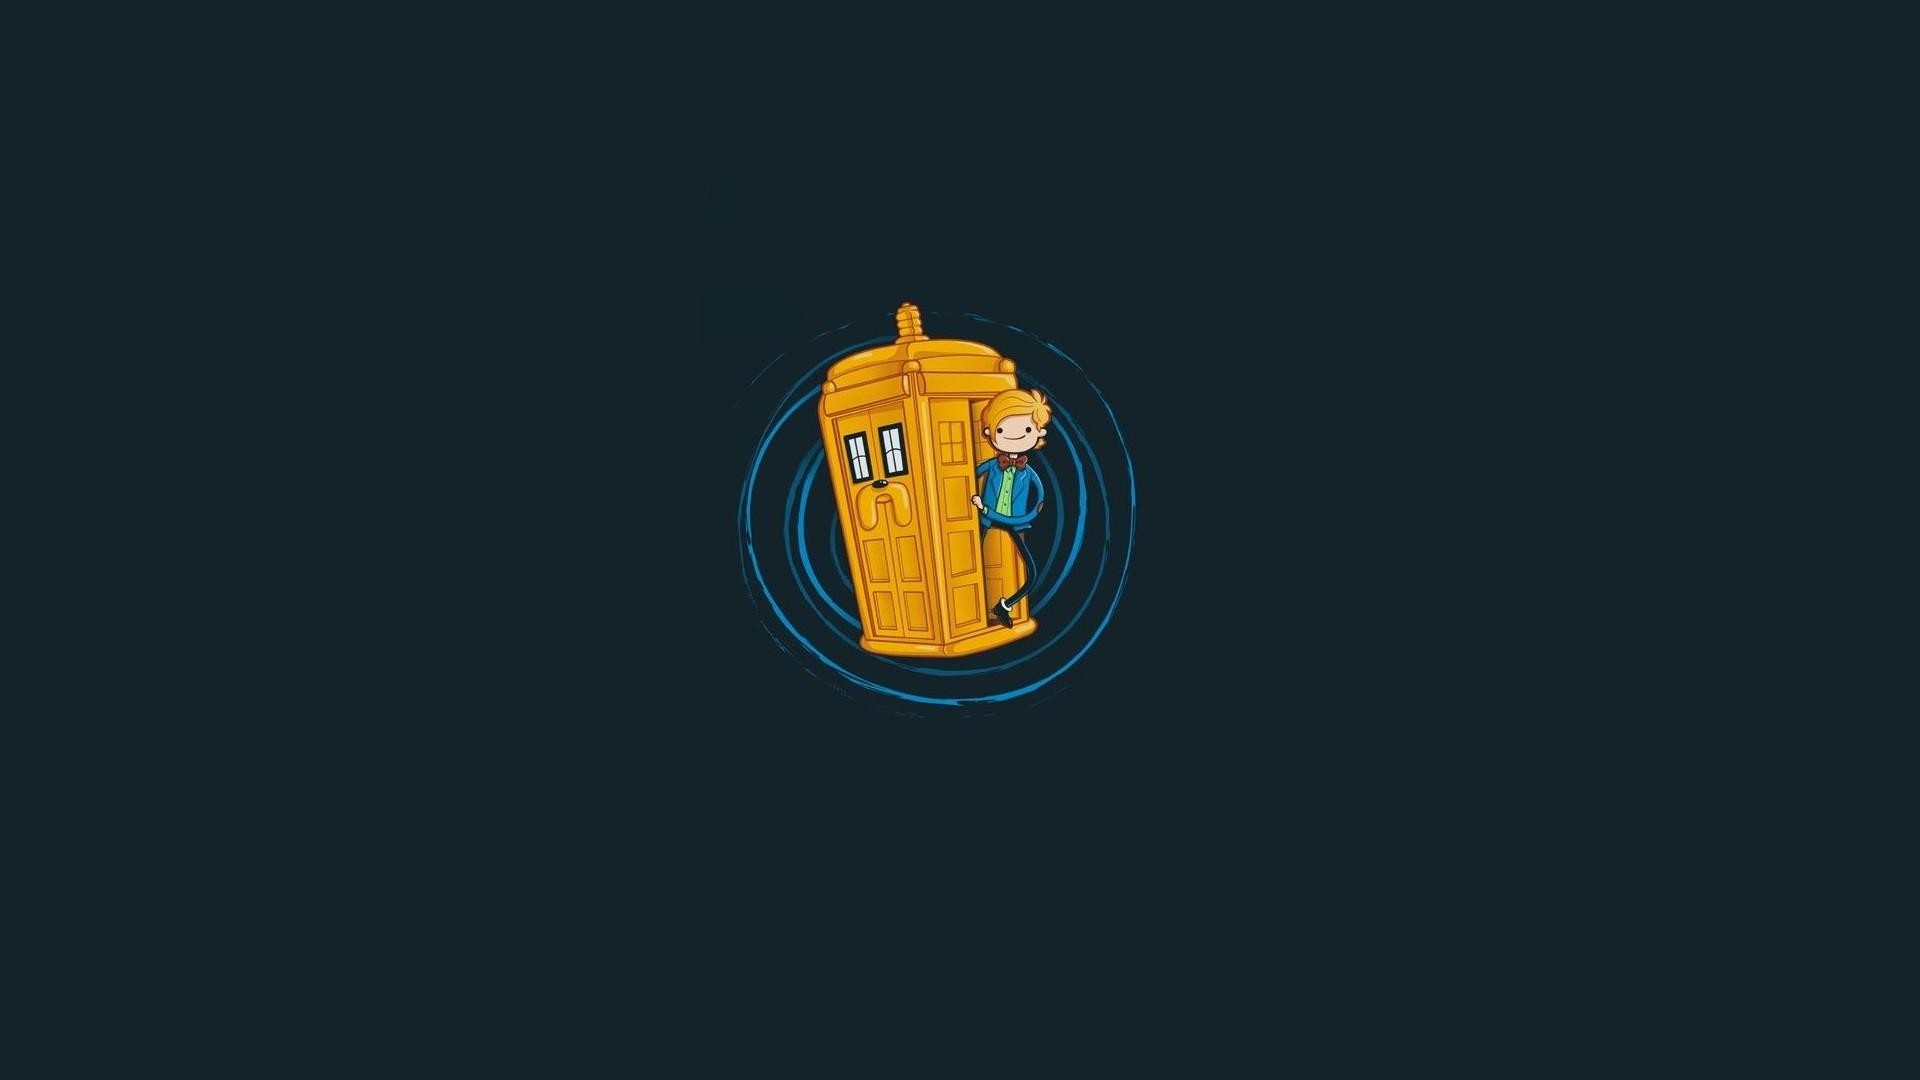 … doctor who wallpaper iphone …